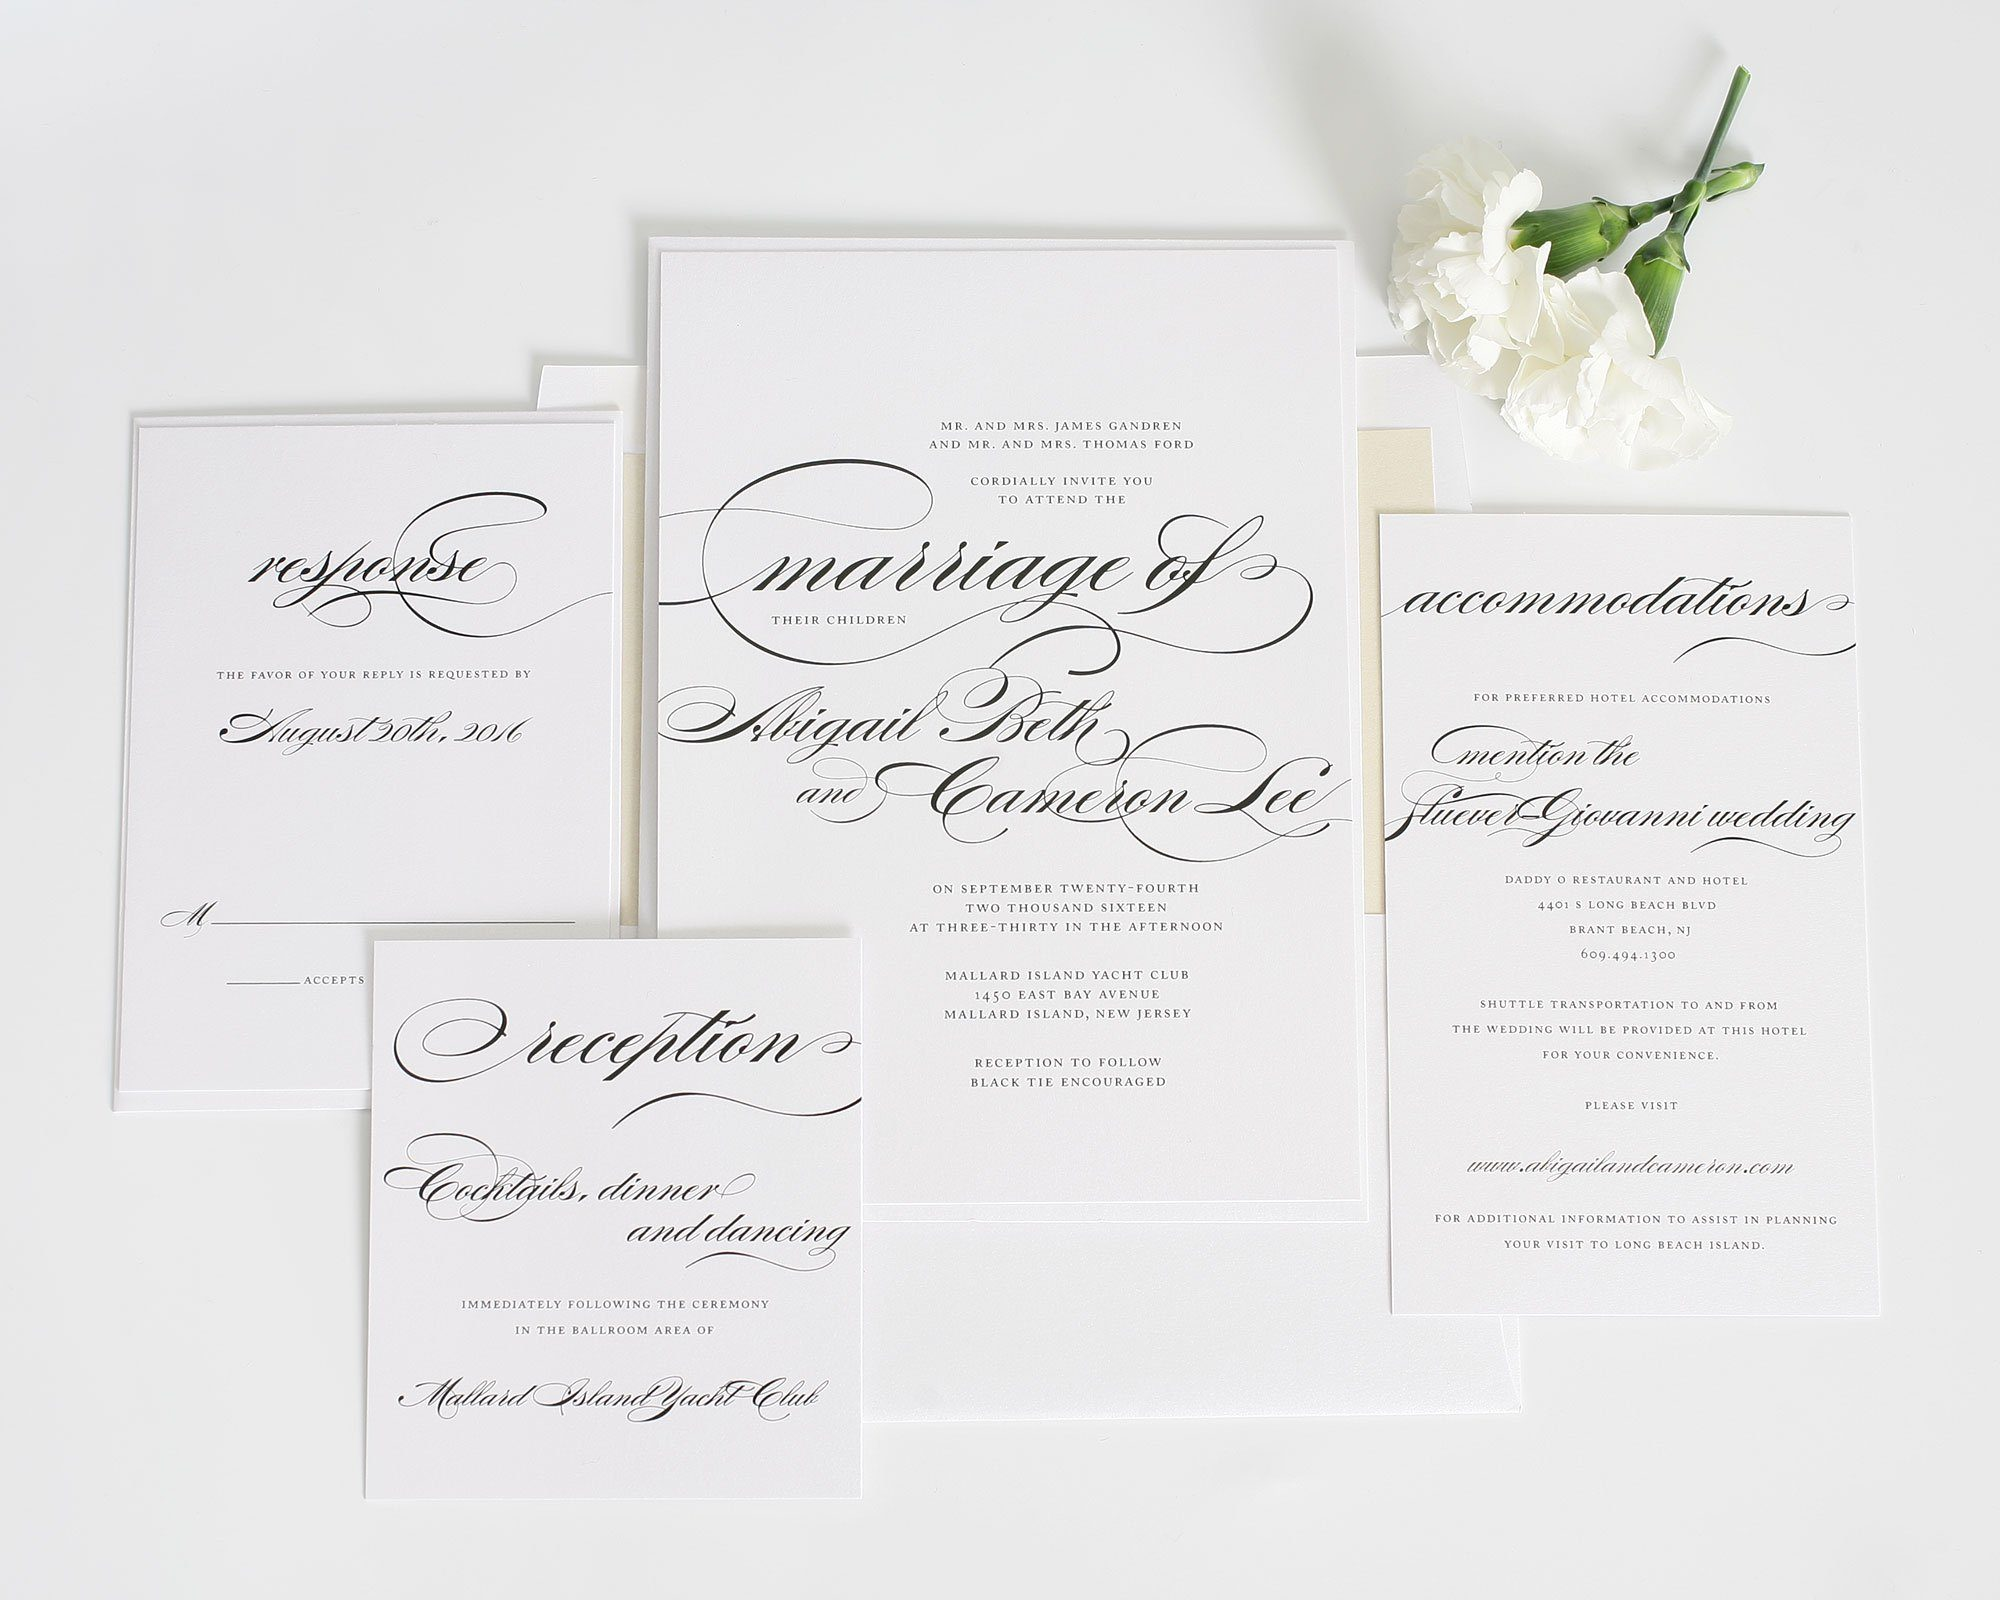 Classic wedding invitations in champagne